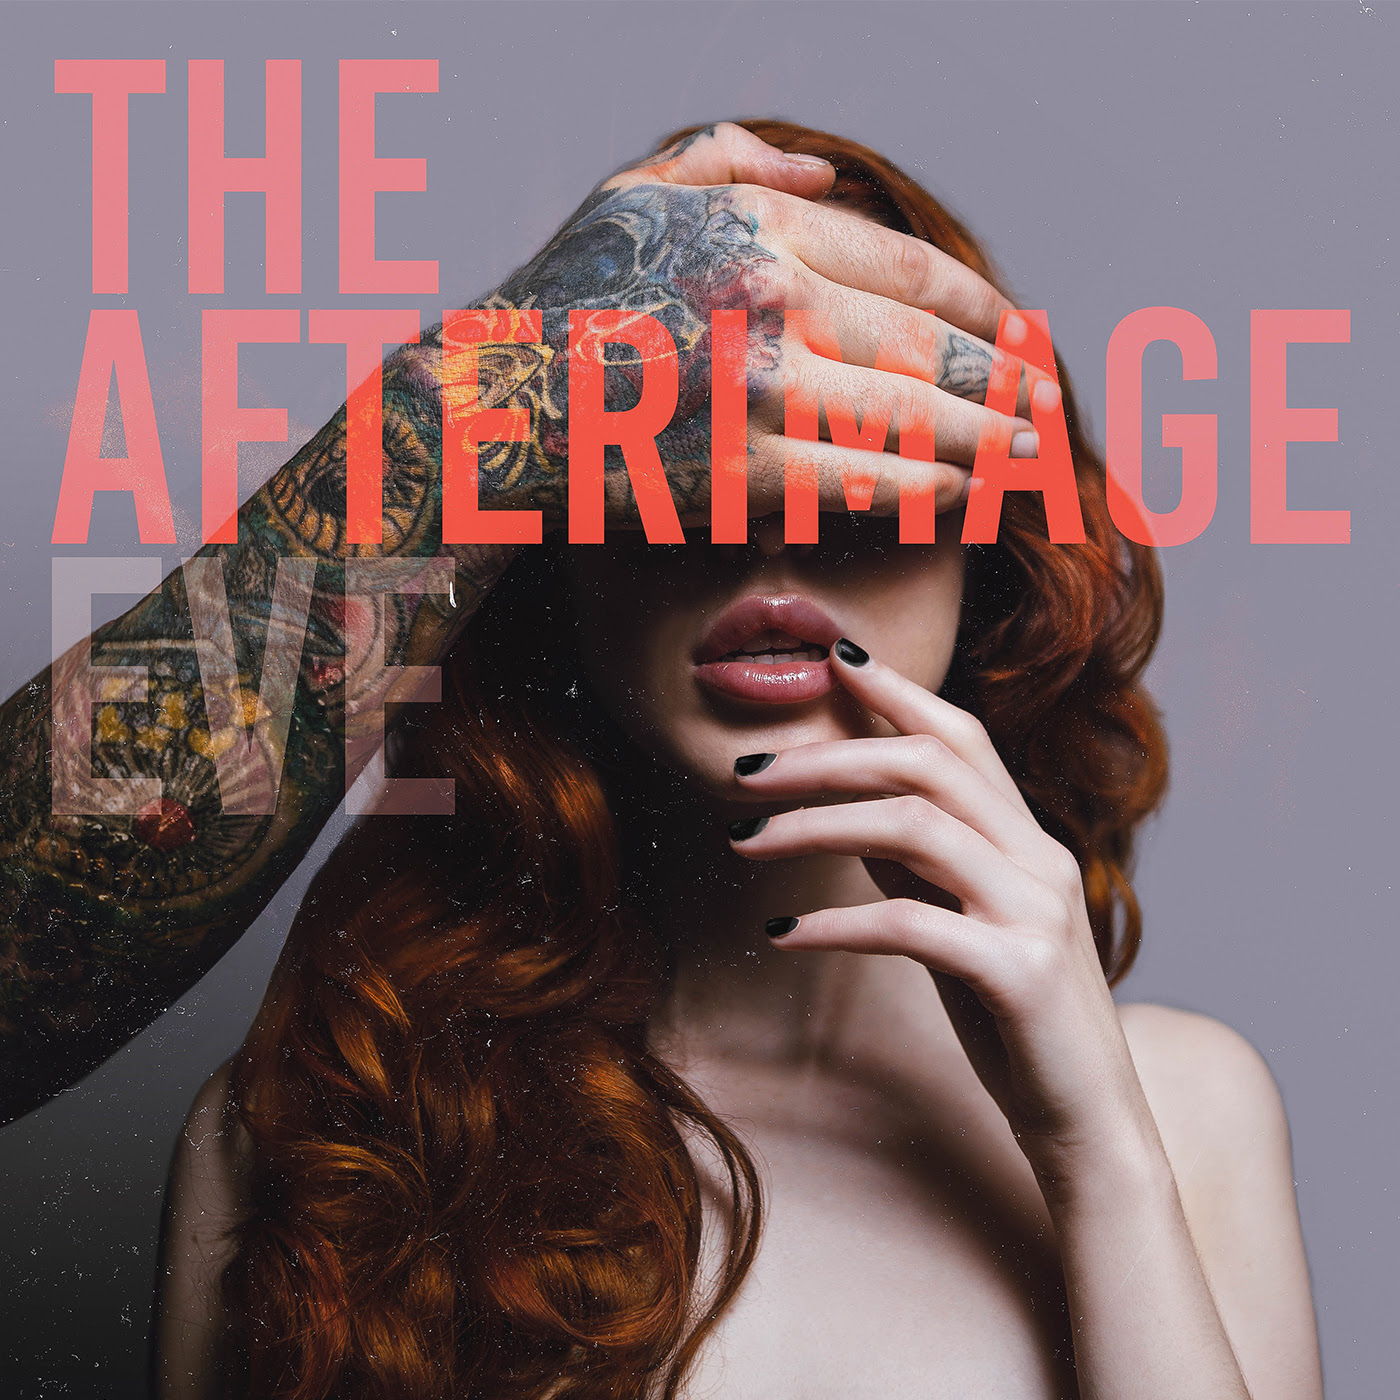 https://www.imoveilive.com/wp-content/uploads/2018/05/The-Afterimage-Eve.jpg